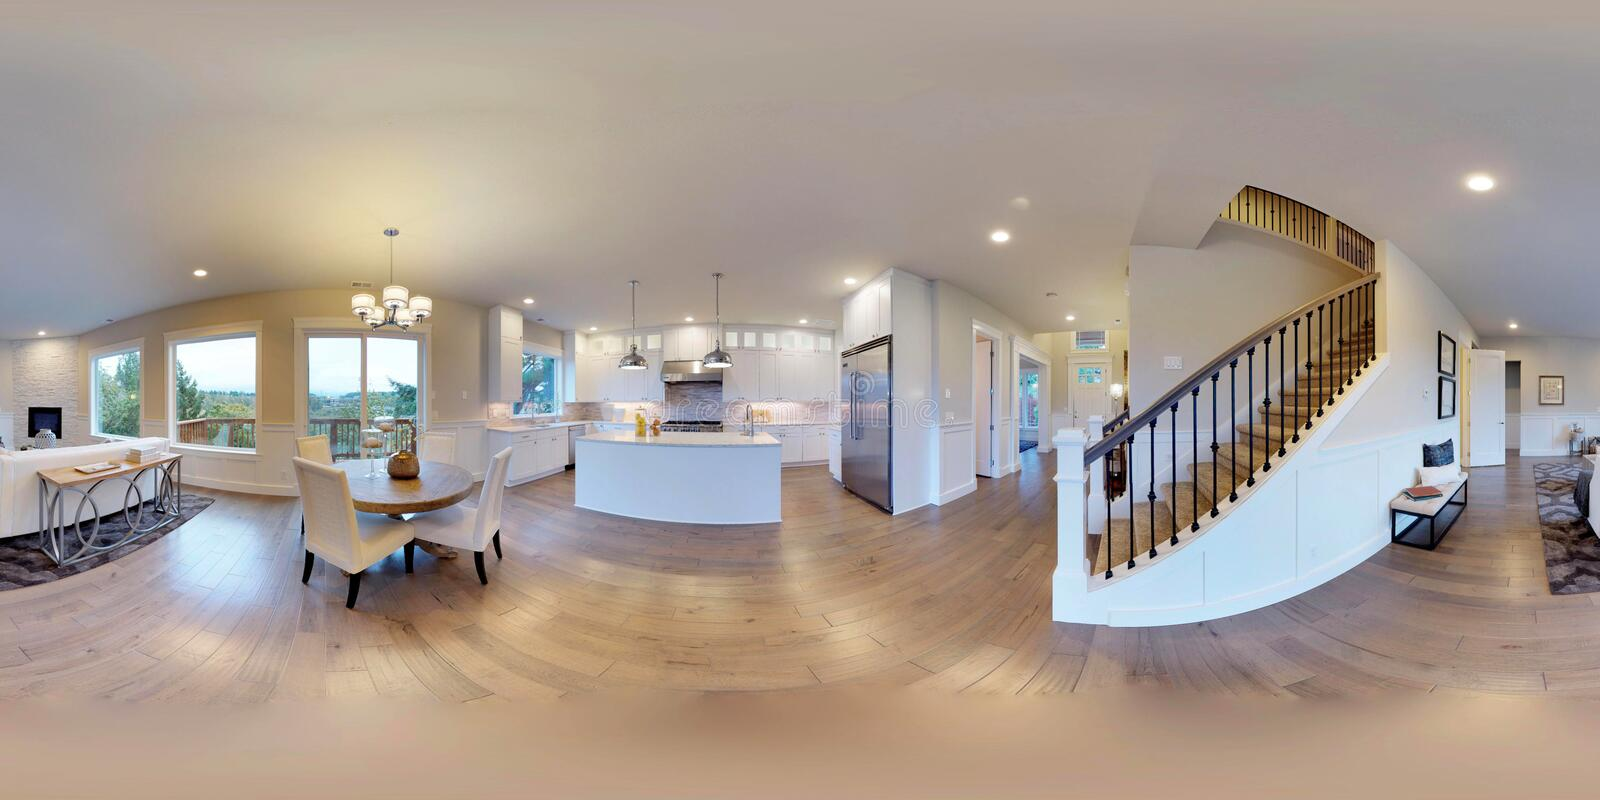 3d illustration spherical 360 degrees, seamless panorama of interior design stock photography